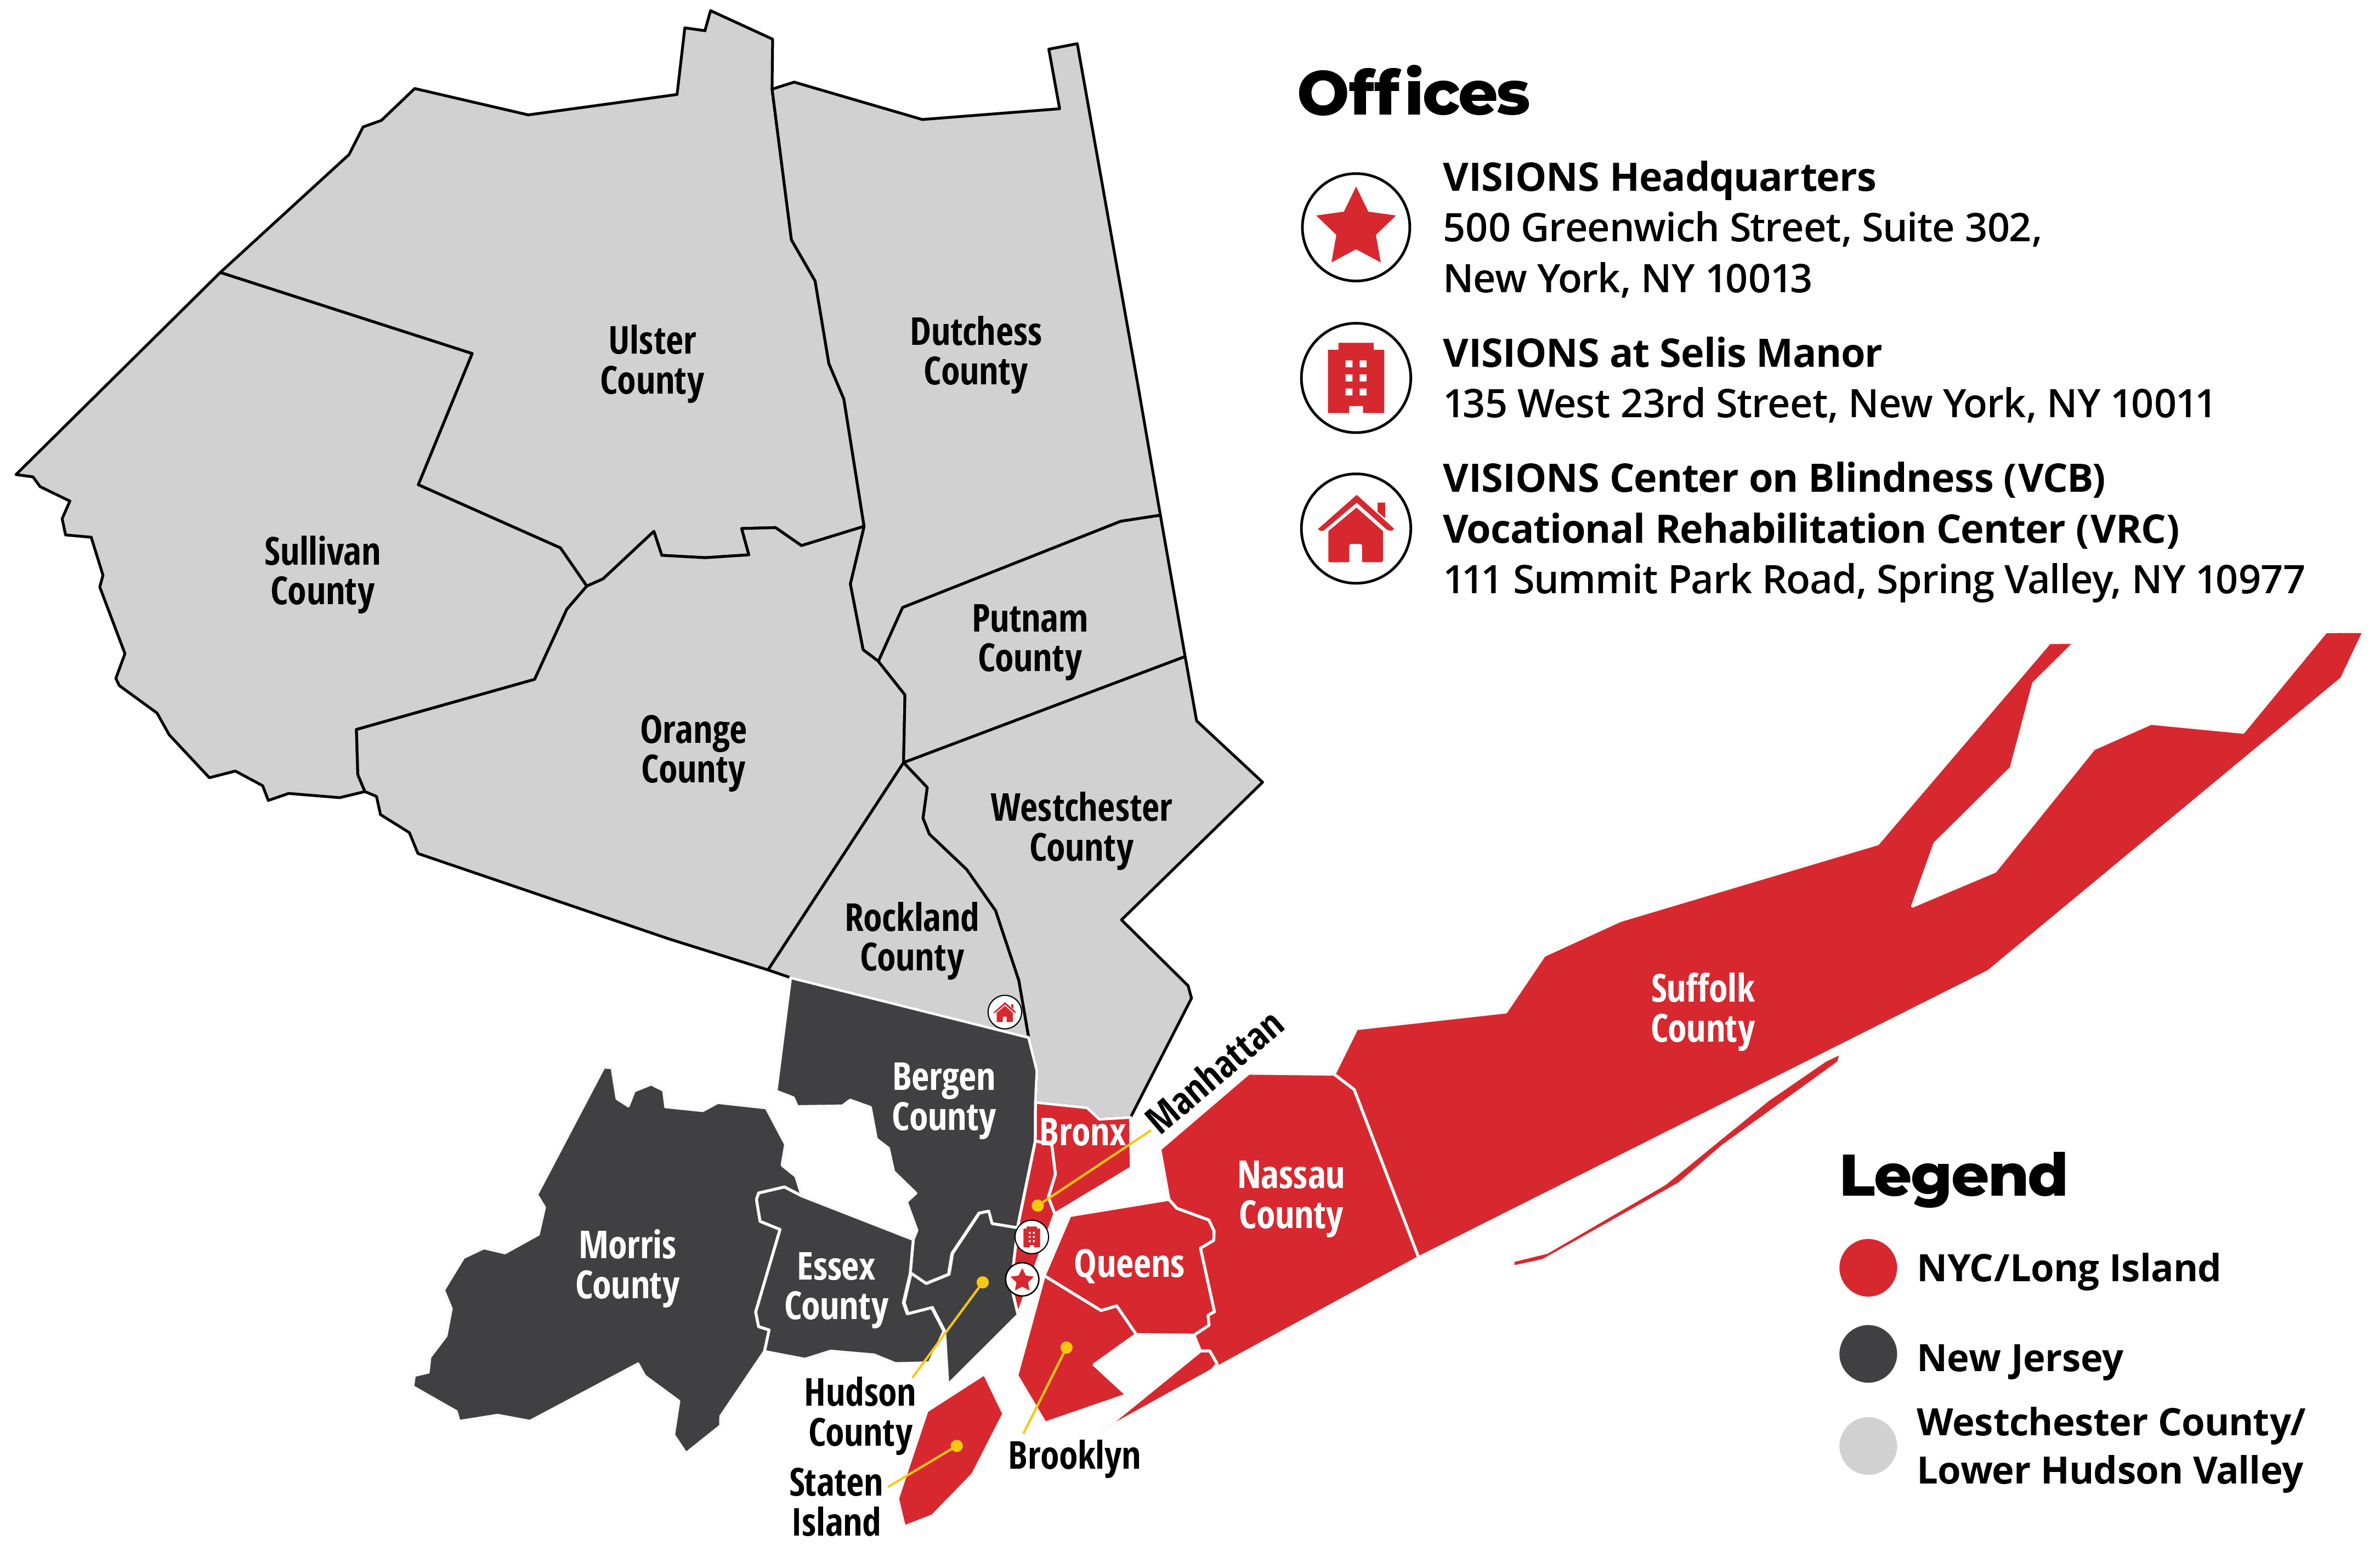 Graphic of a map that highlights the counties in which VISIONS serves, broken down by region. First region: New York, highlighted in red: Bronx, Manhattan, where VISIONS Headquarters and VISIONS at Selis Manor are located, Brooklyn, Queens, Staten Island, Nassau County, and Suffolk County. Second region: Westchester, highlighted in light gray: Rockland County, where VISIONS Center on Blindness and VISIONS Vocational Rehabilitation Center is located, Westchester County, Orange County, Putnam County, Sullivan County, Ulster County, and Dutchess County. Third region: New Jersey, highlighted in dark gray: Hudson County, Bergen County, Essex County, and Morris County. Detailed addresses are below.